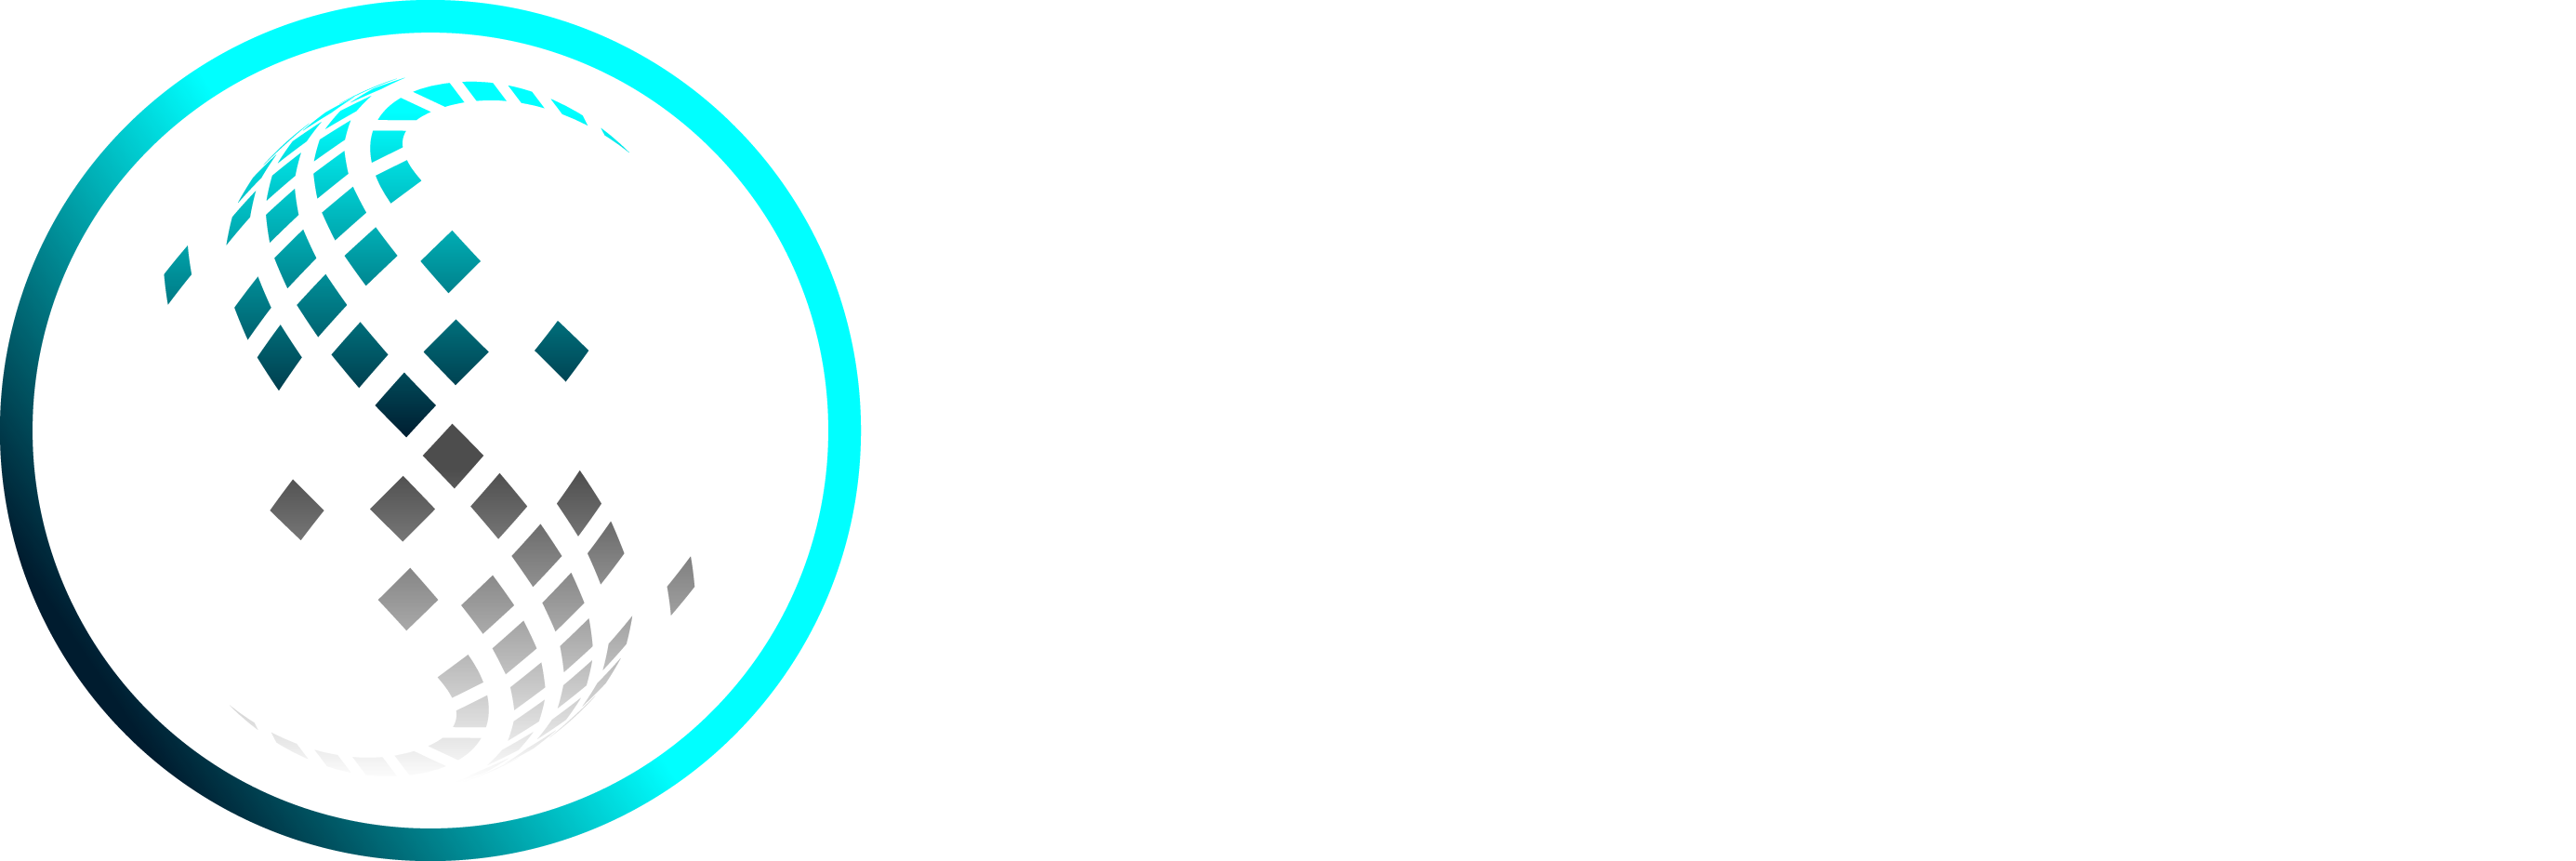 Create an awesome tech Logo for Scry Security